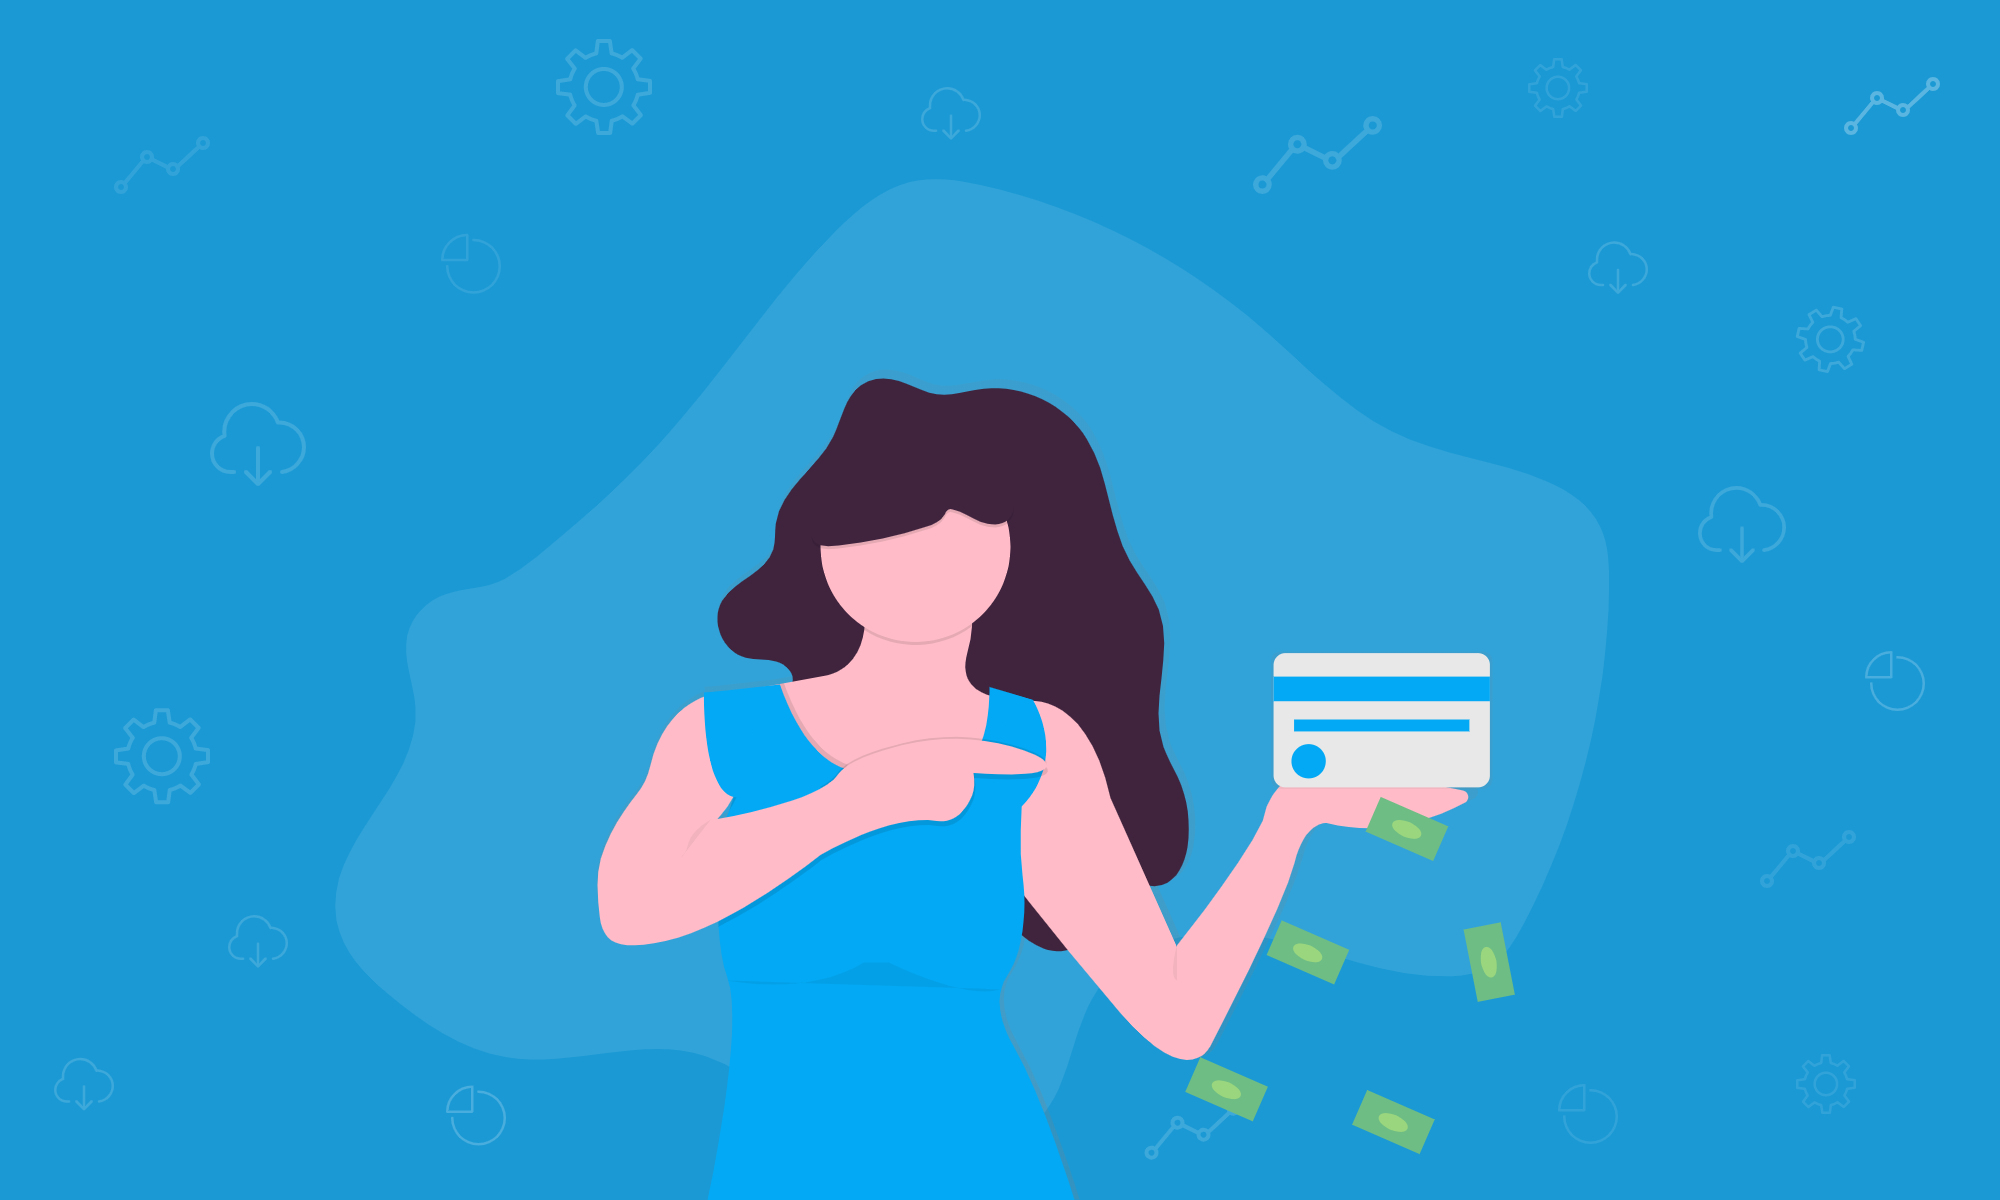 Weighing Up the Pros and Cons of Going Cashless